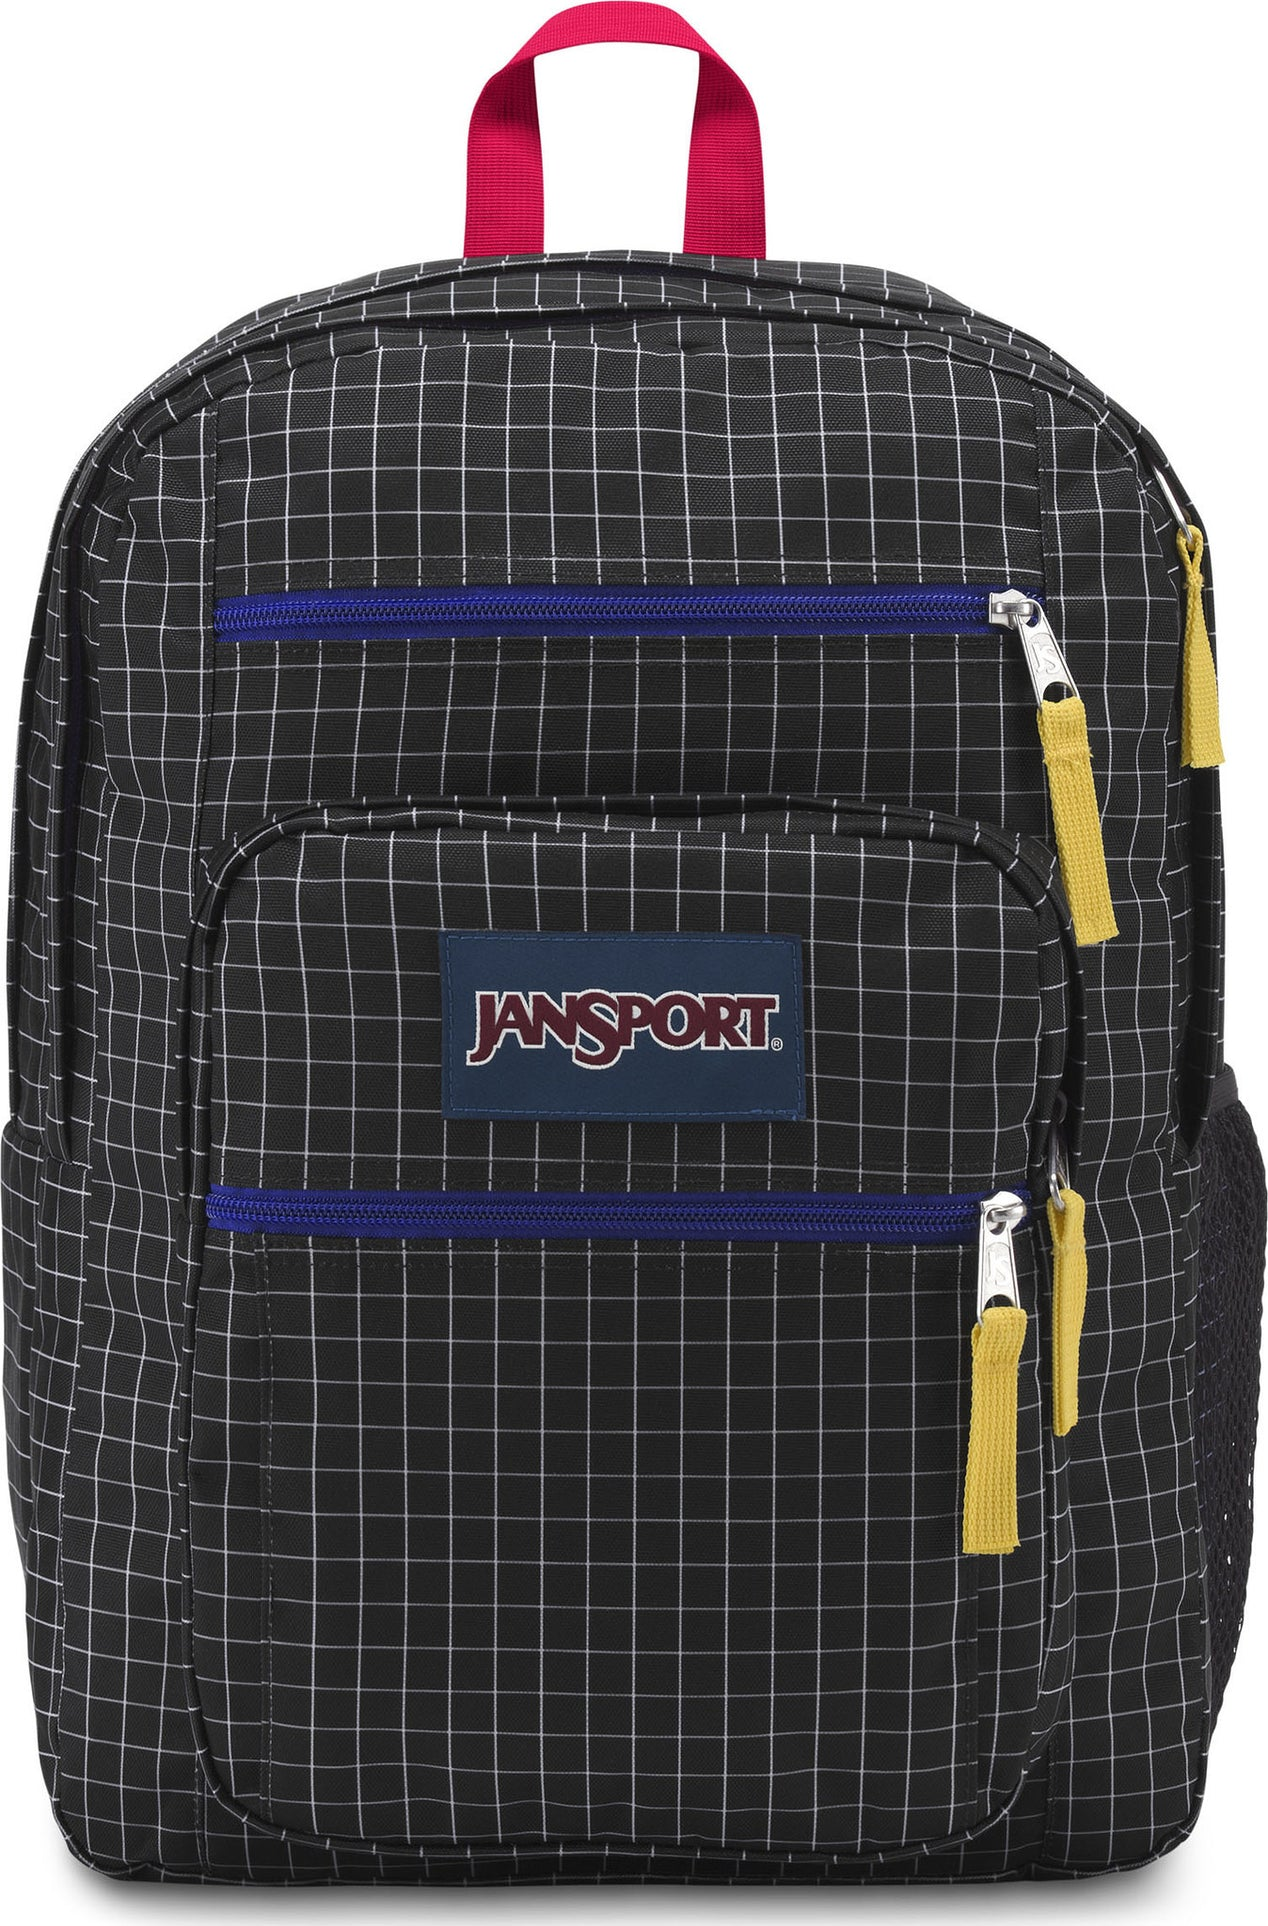 894cb6732c Light Gray Jansport Big Student Backpack – Patmo Technologies Limited